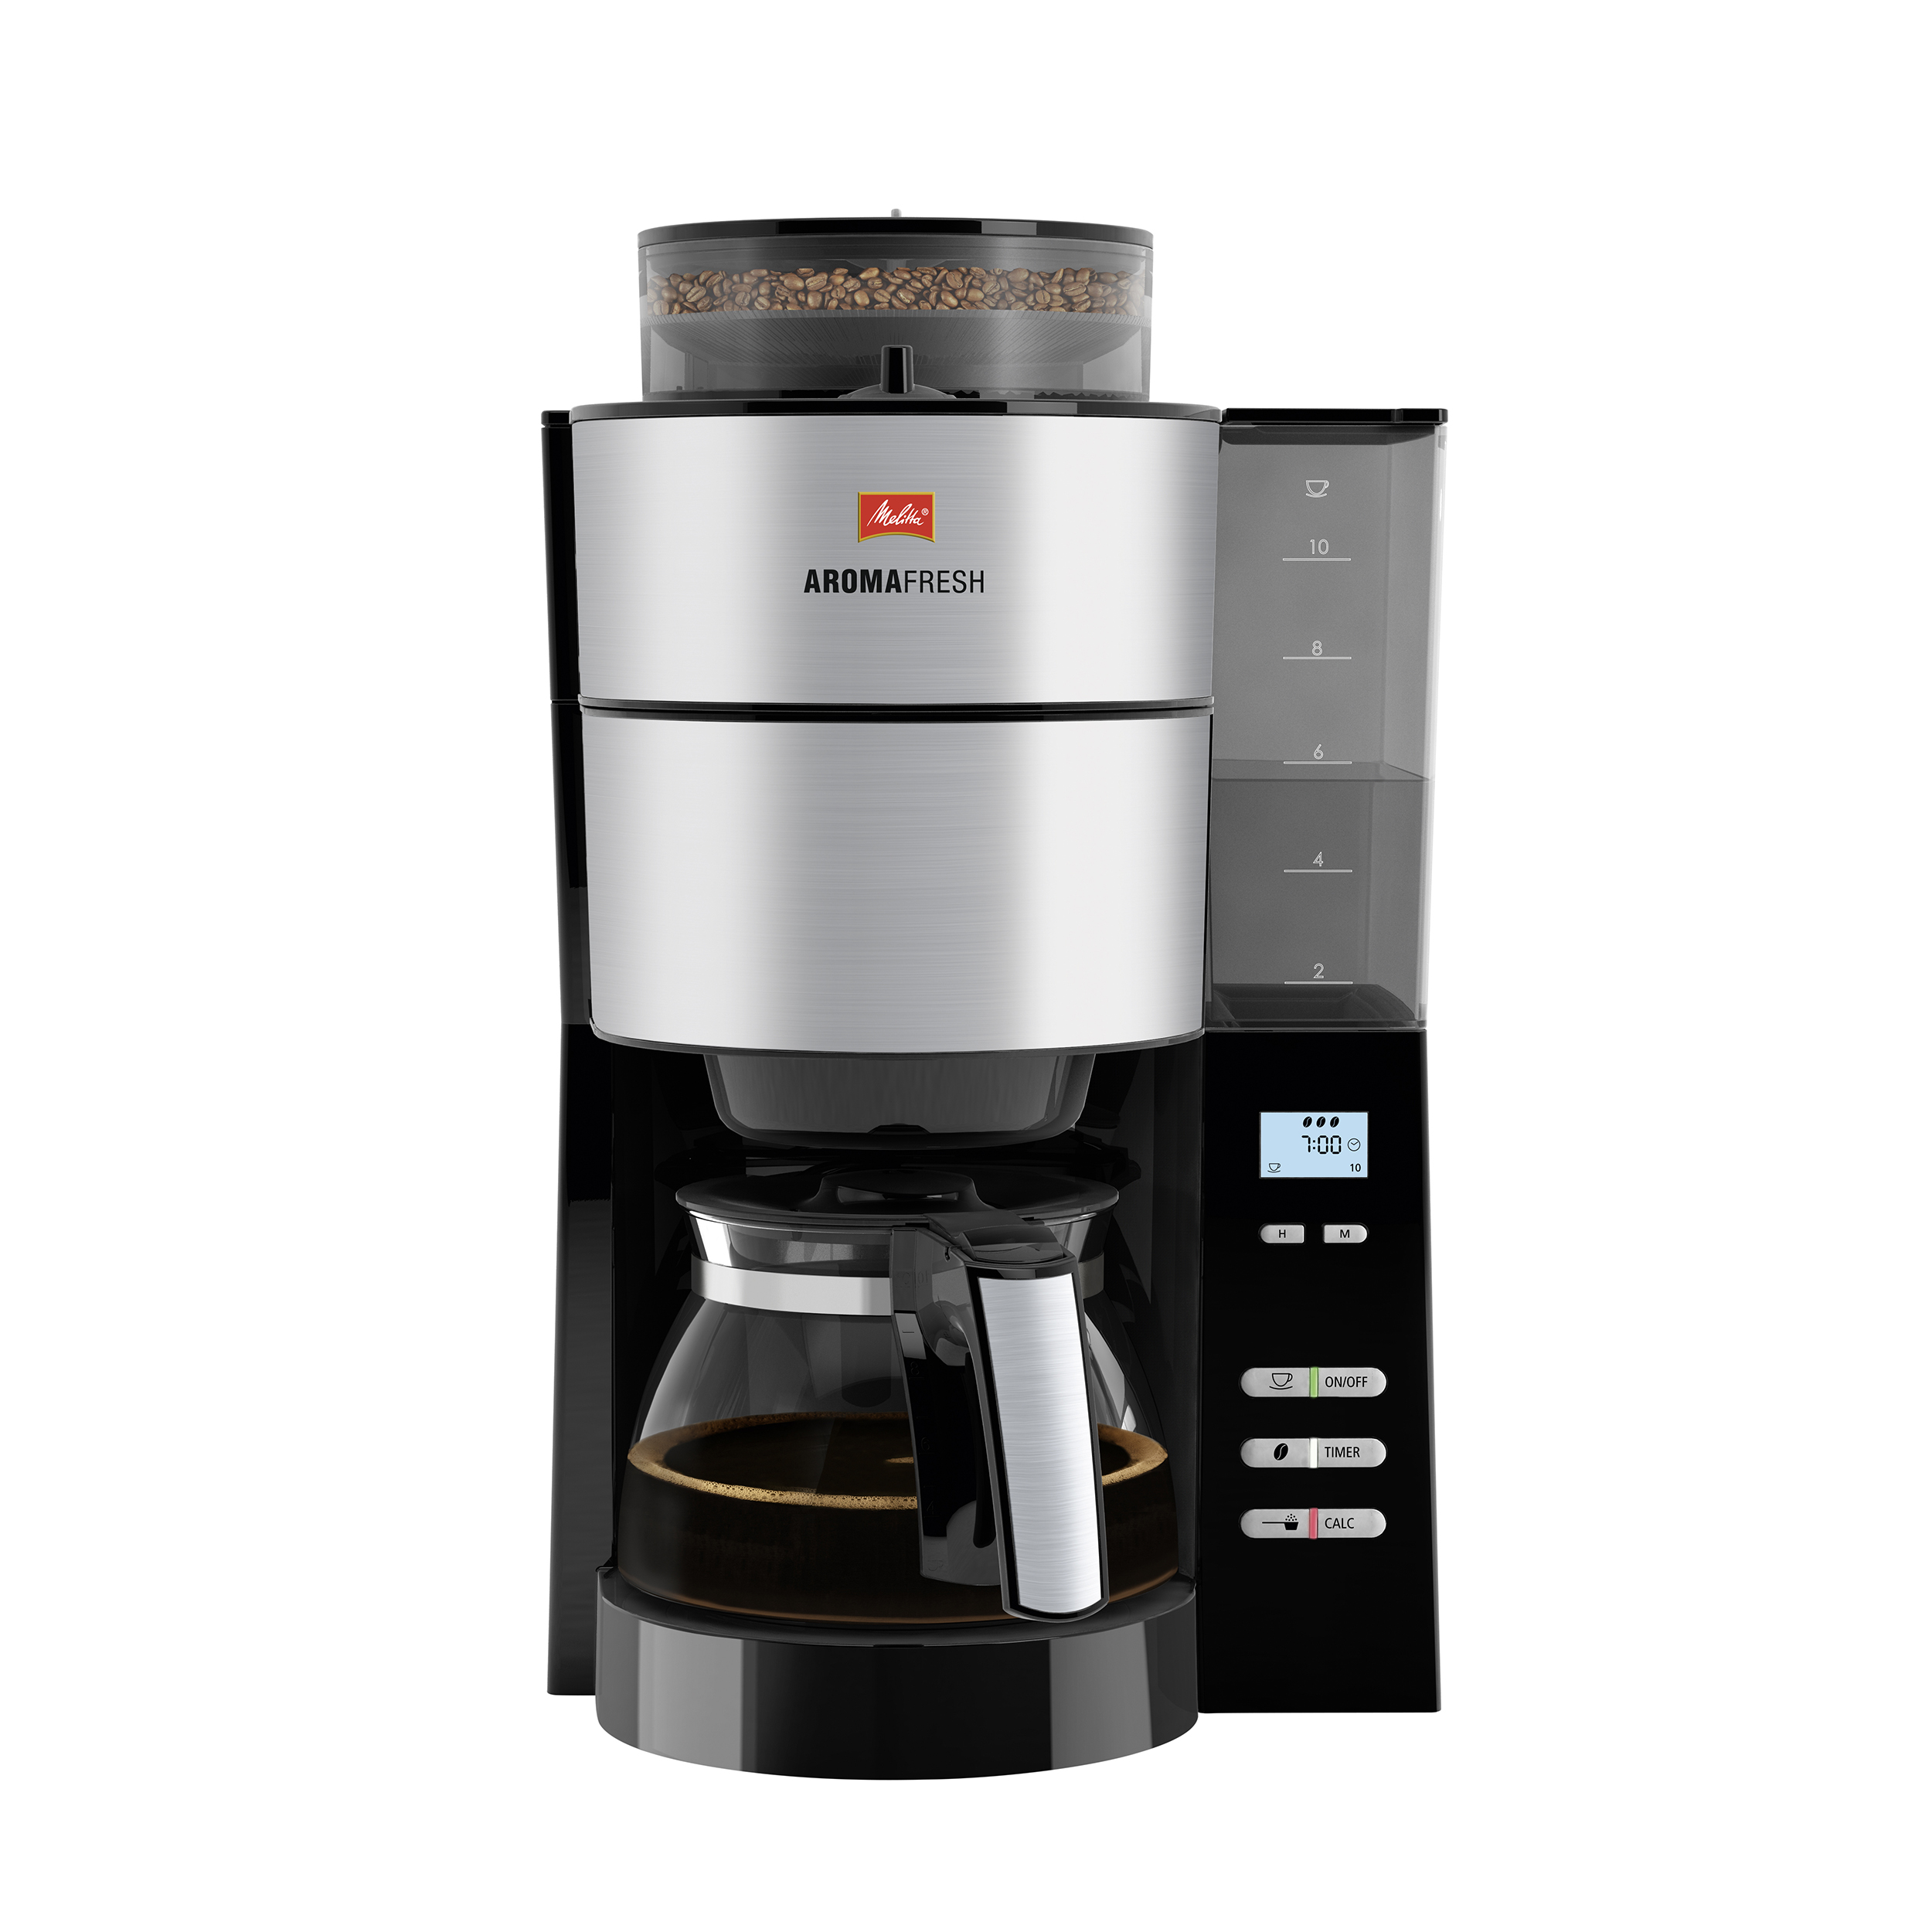 Coffee Machines & Accessories Melitta Aromafresh Grind & Brew Filter Coffee Machine Black/Stainless Steel Ref 6760642